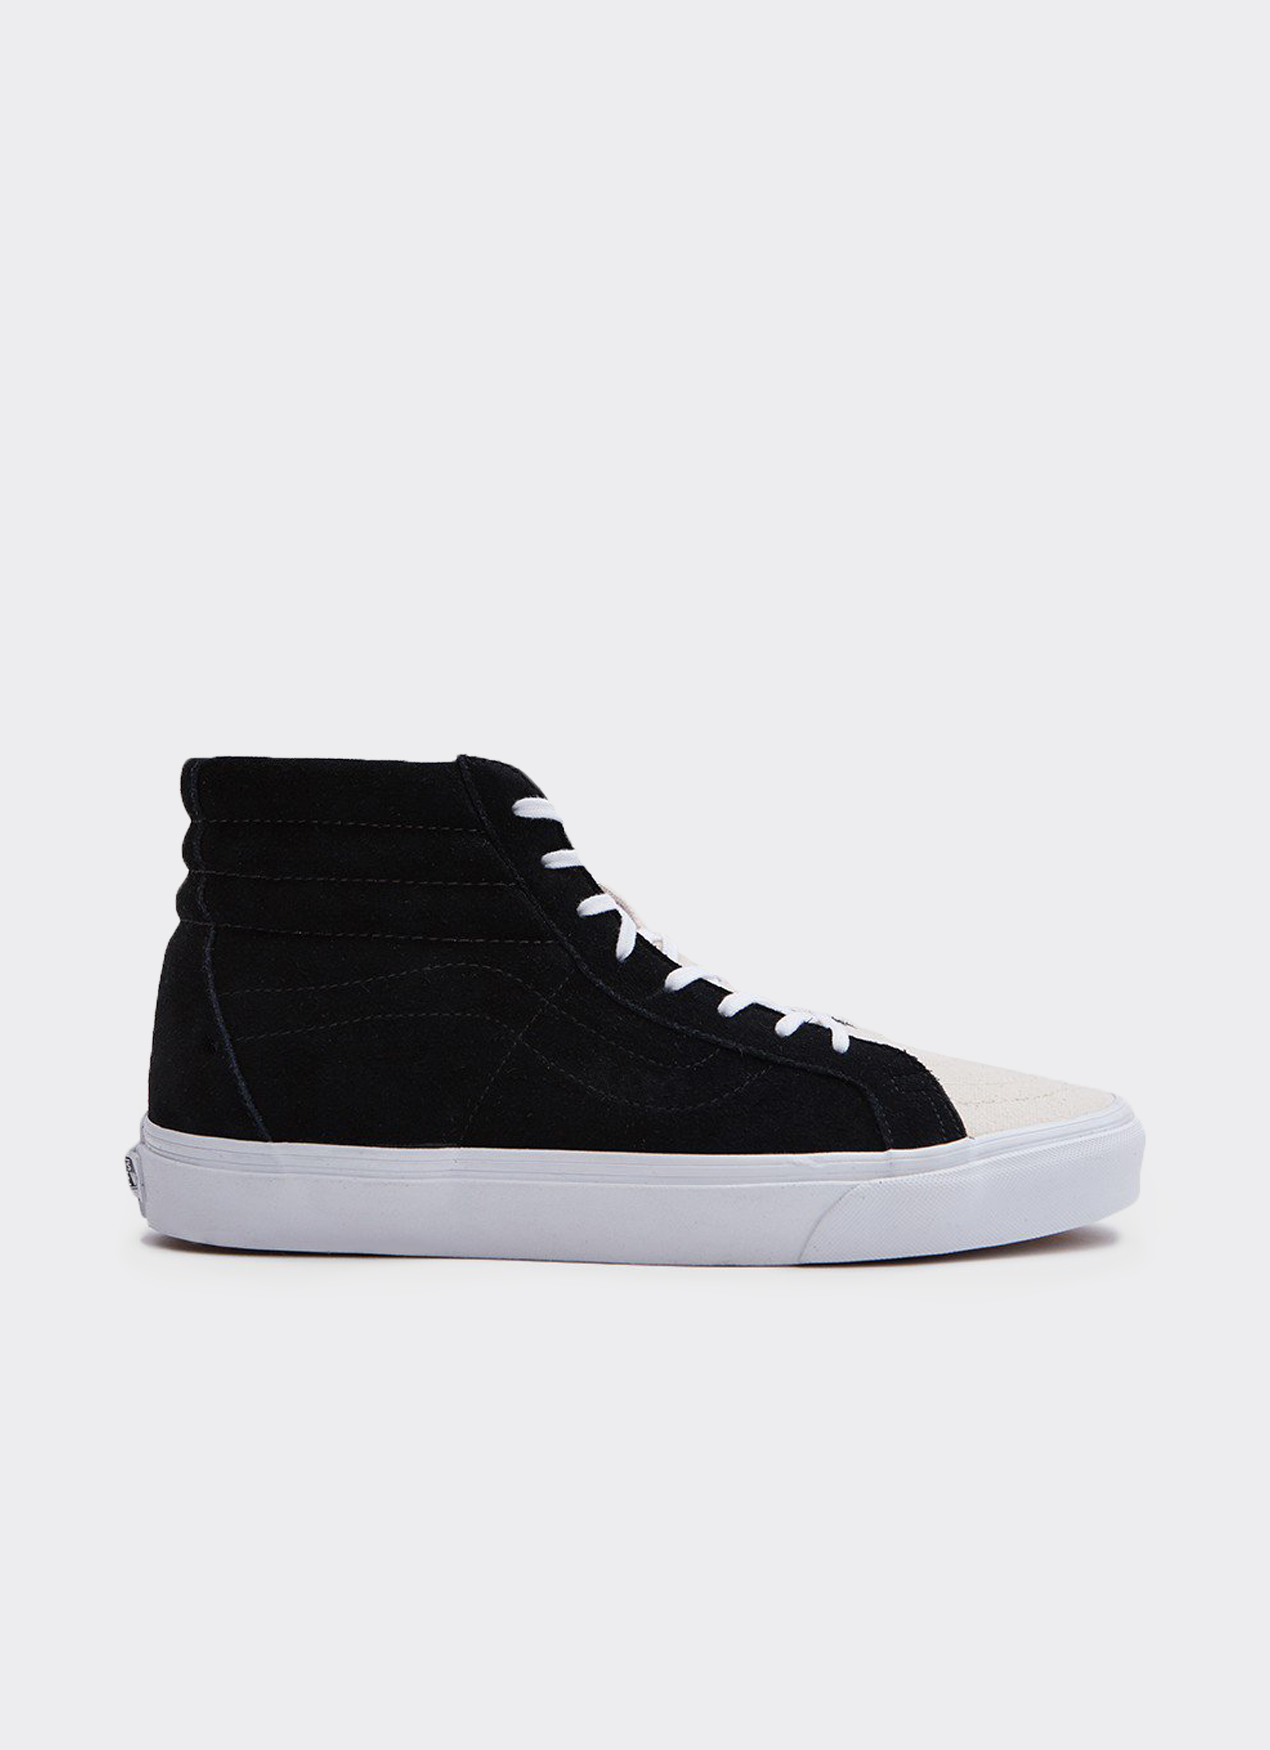 c8a36c94e6a166 Buy Original VANS Black UA Sk8-Hi Reissue 2-Tone High Top Sneakers ...